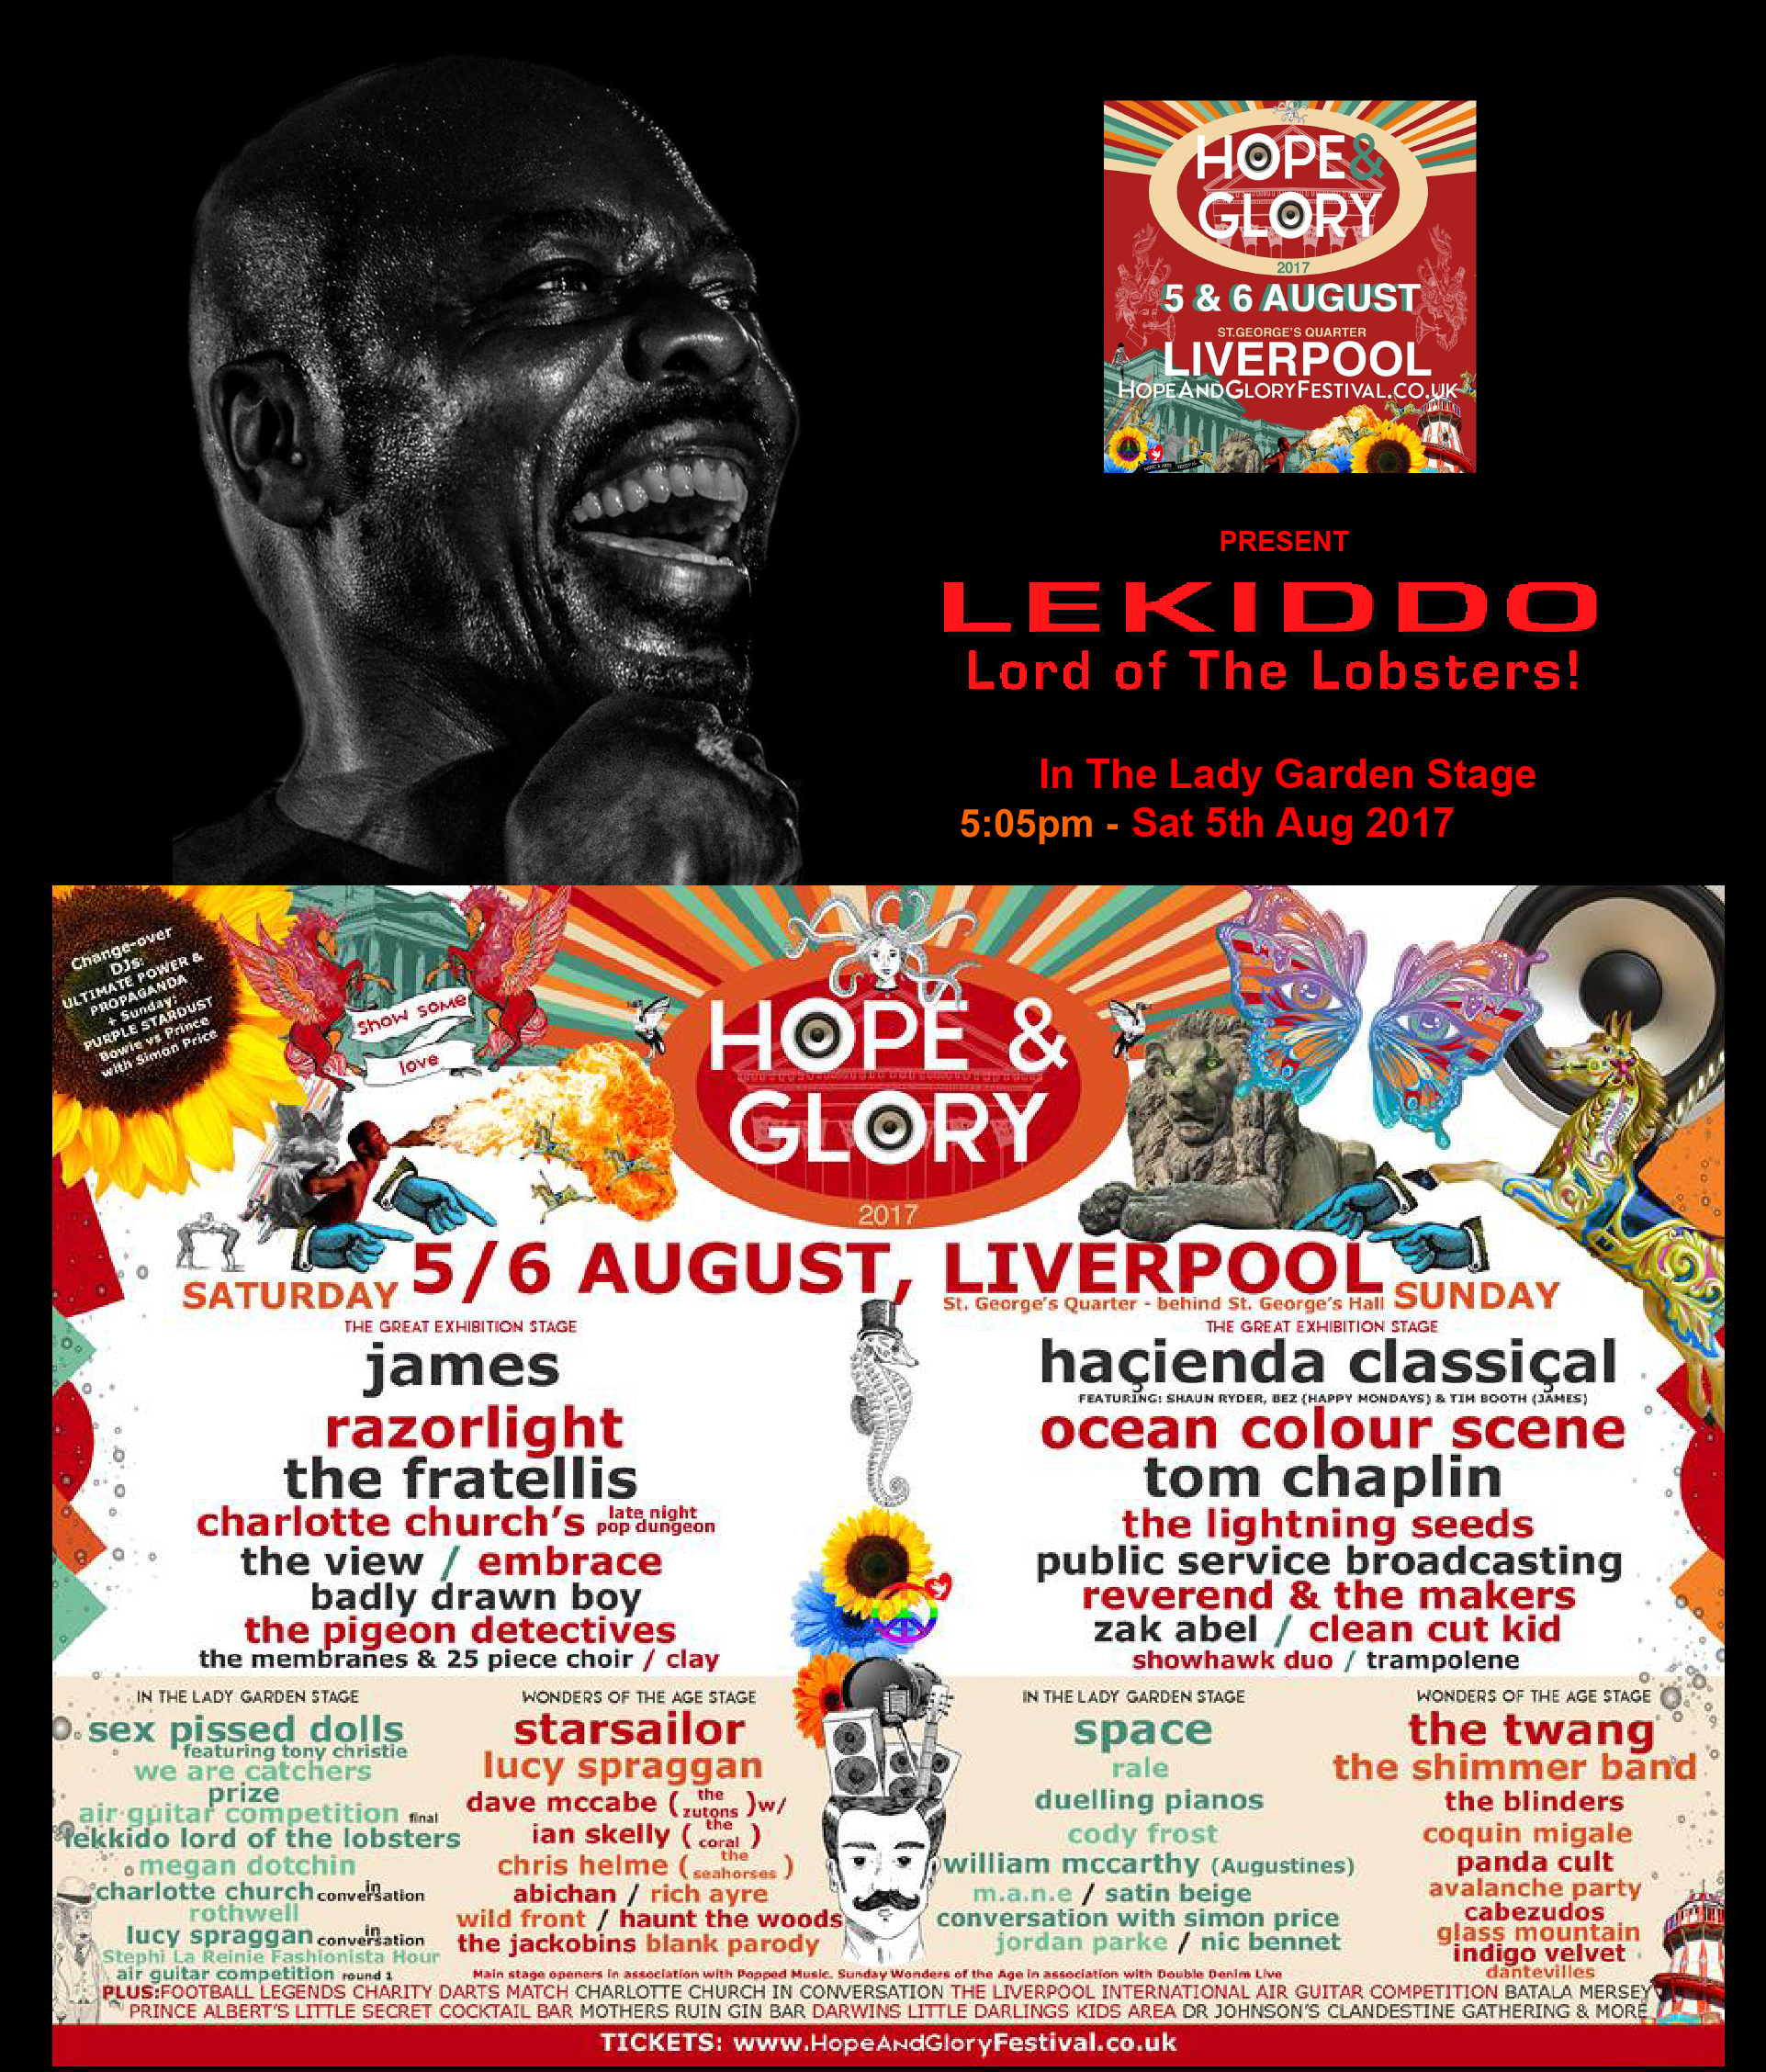 LEKIDDO - Lord of The Lobsters! live In the Lady Garden Stage 5tth August 2017